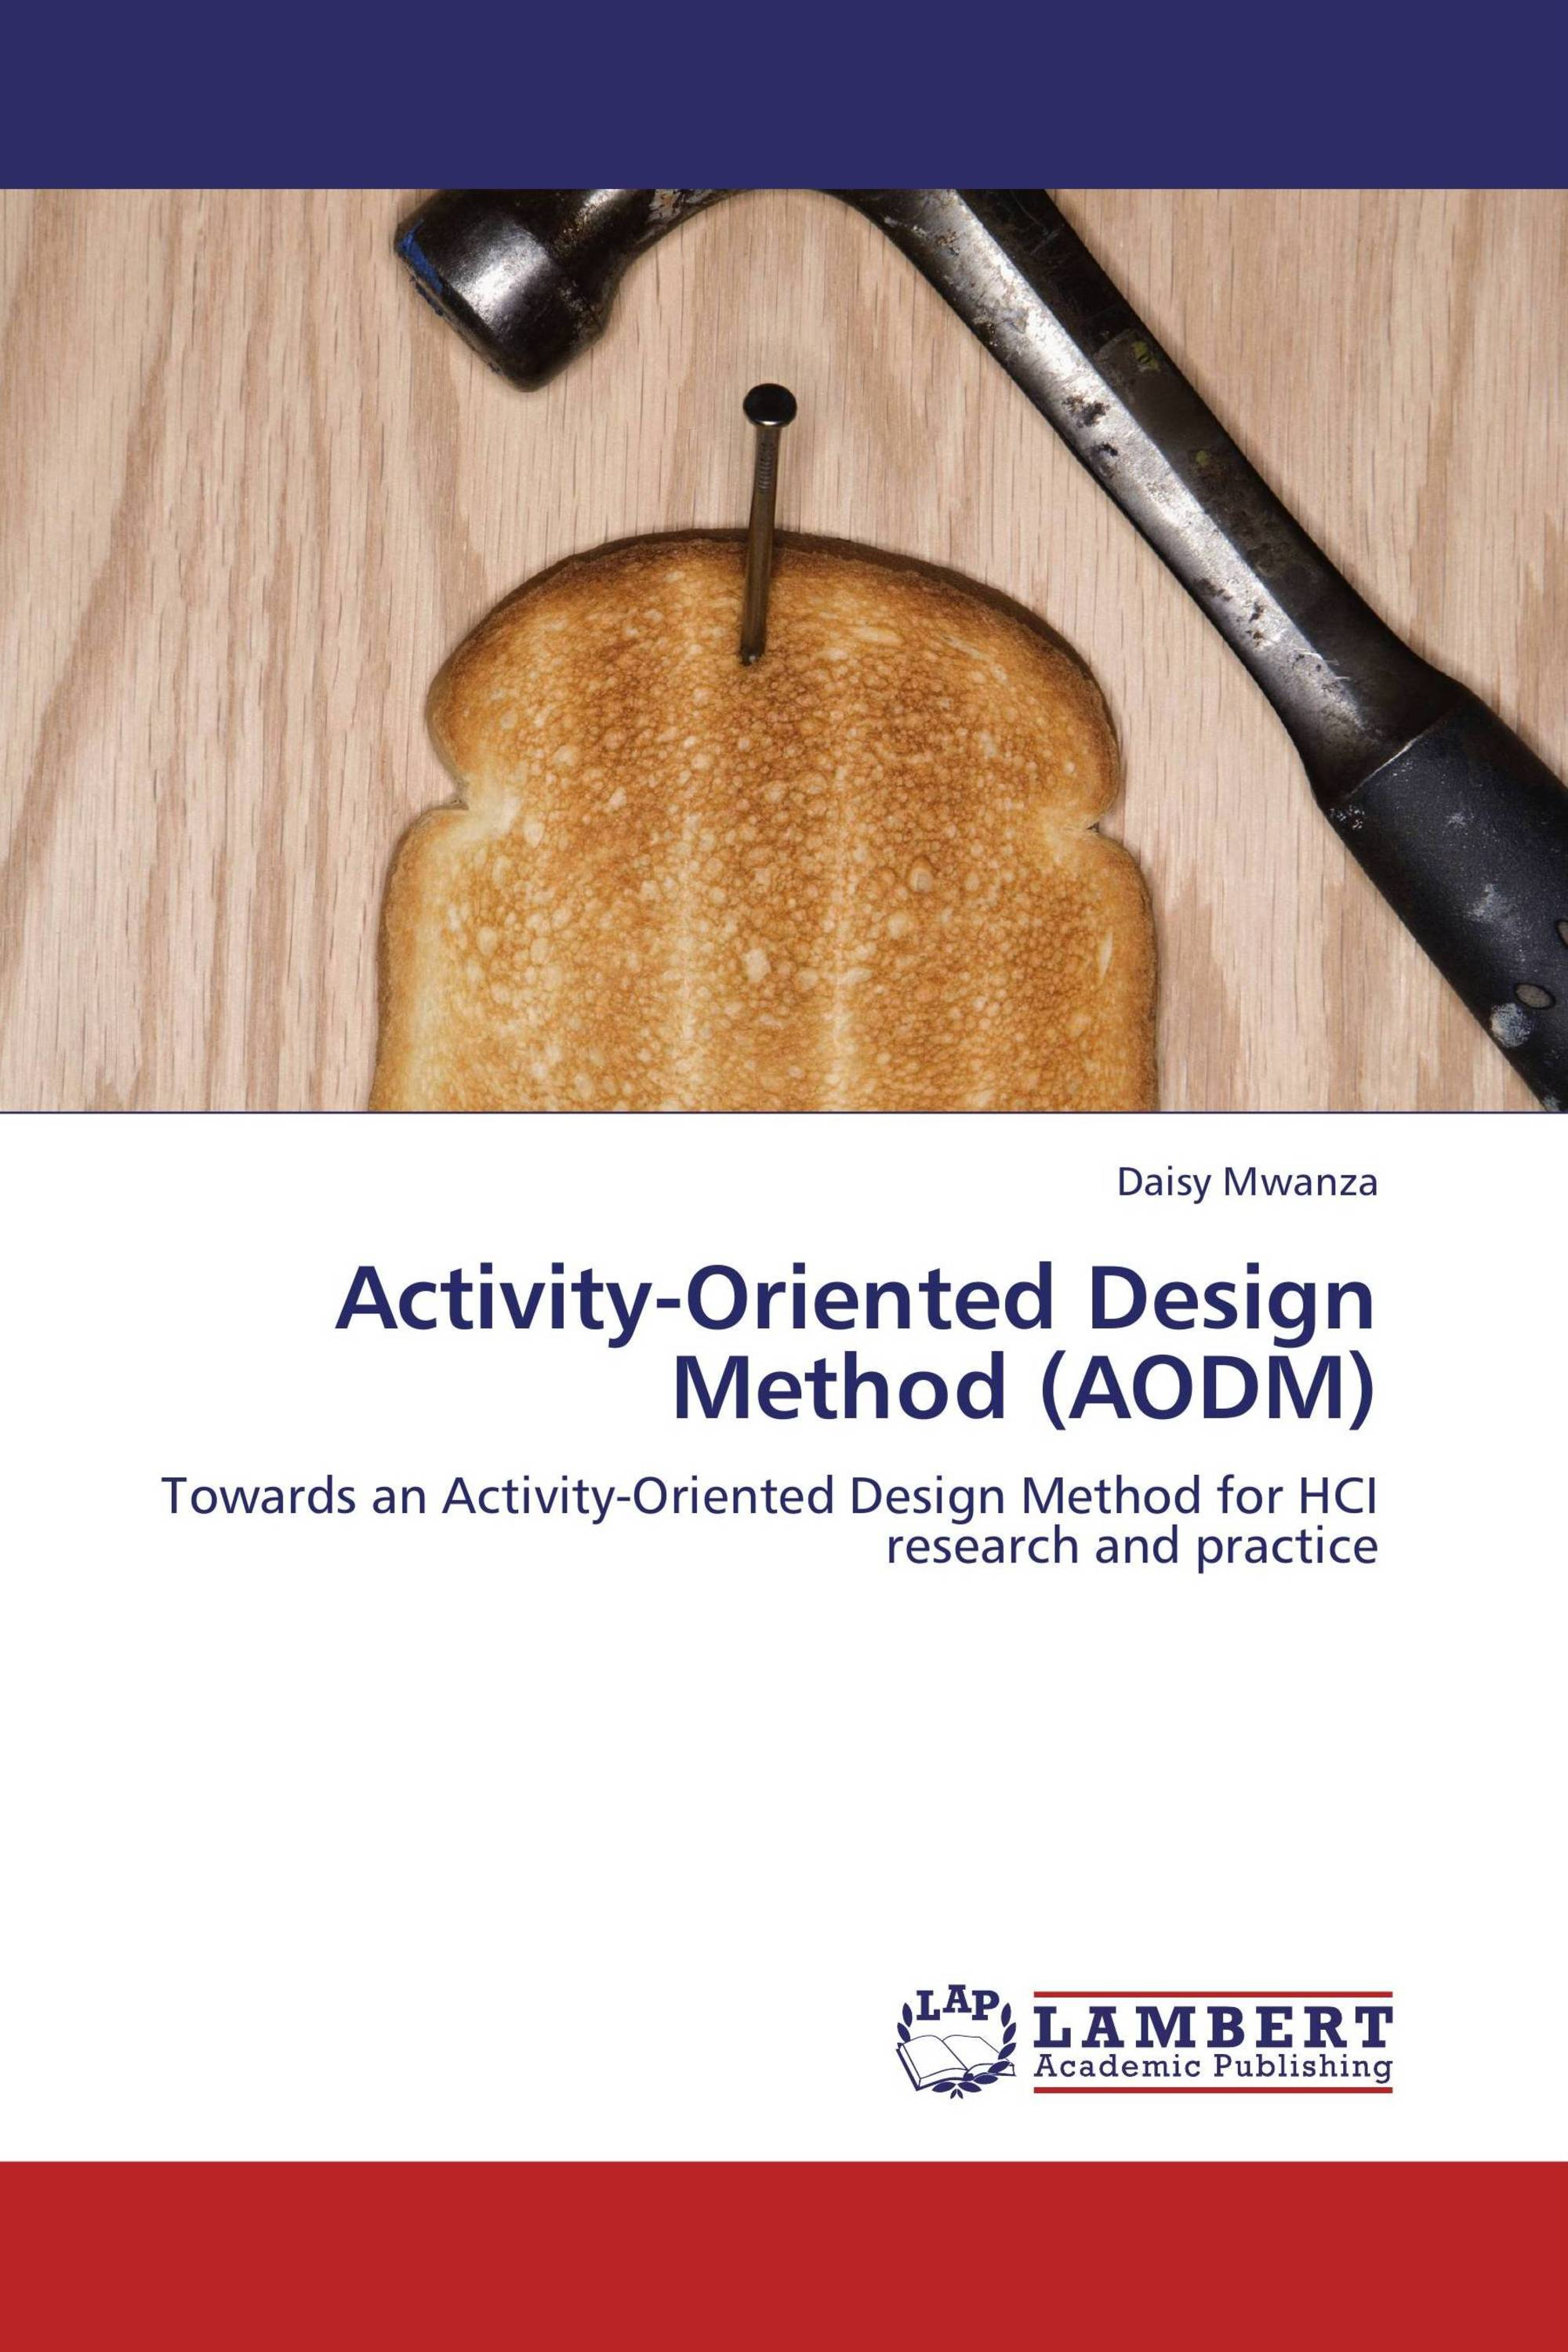 Activity-Oriented Design Method (AODM)